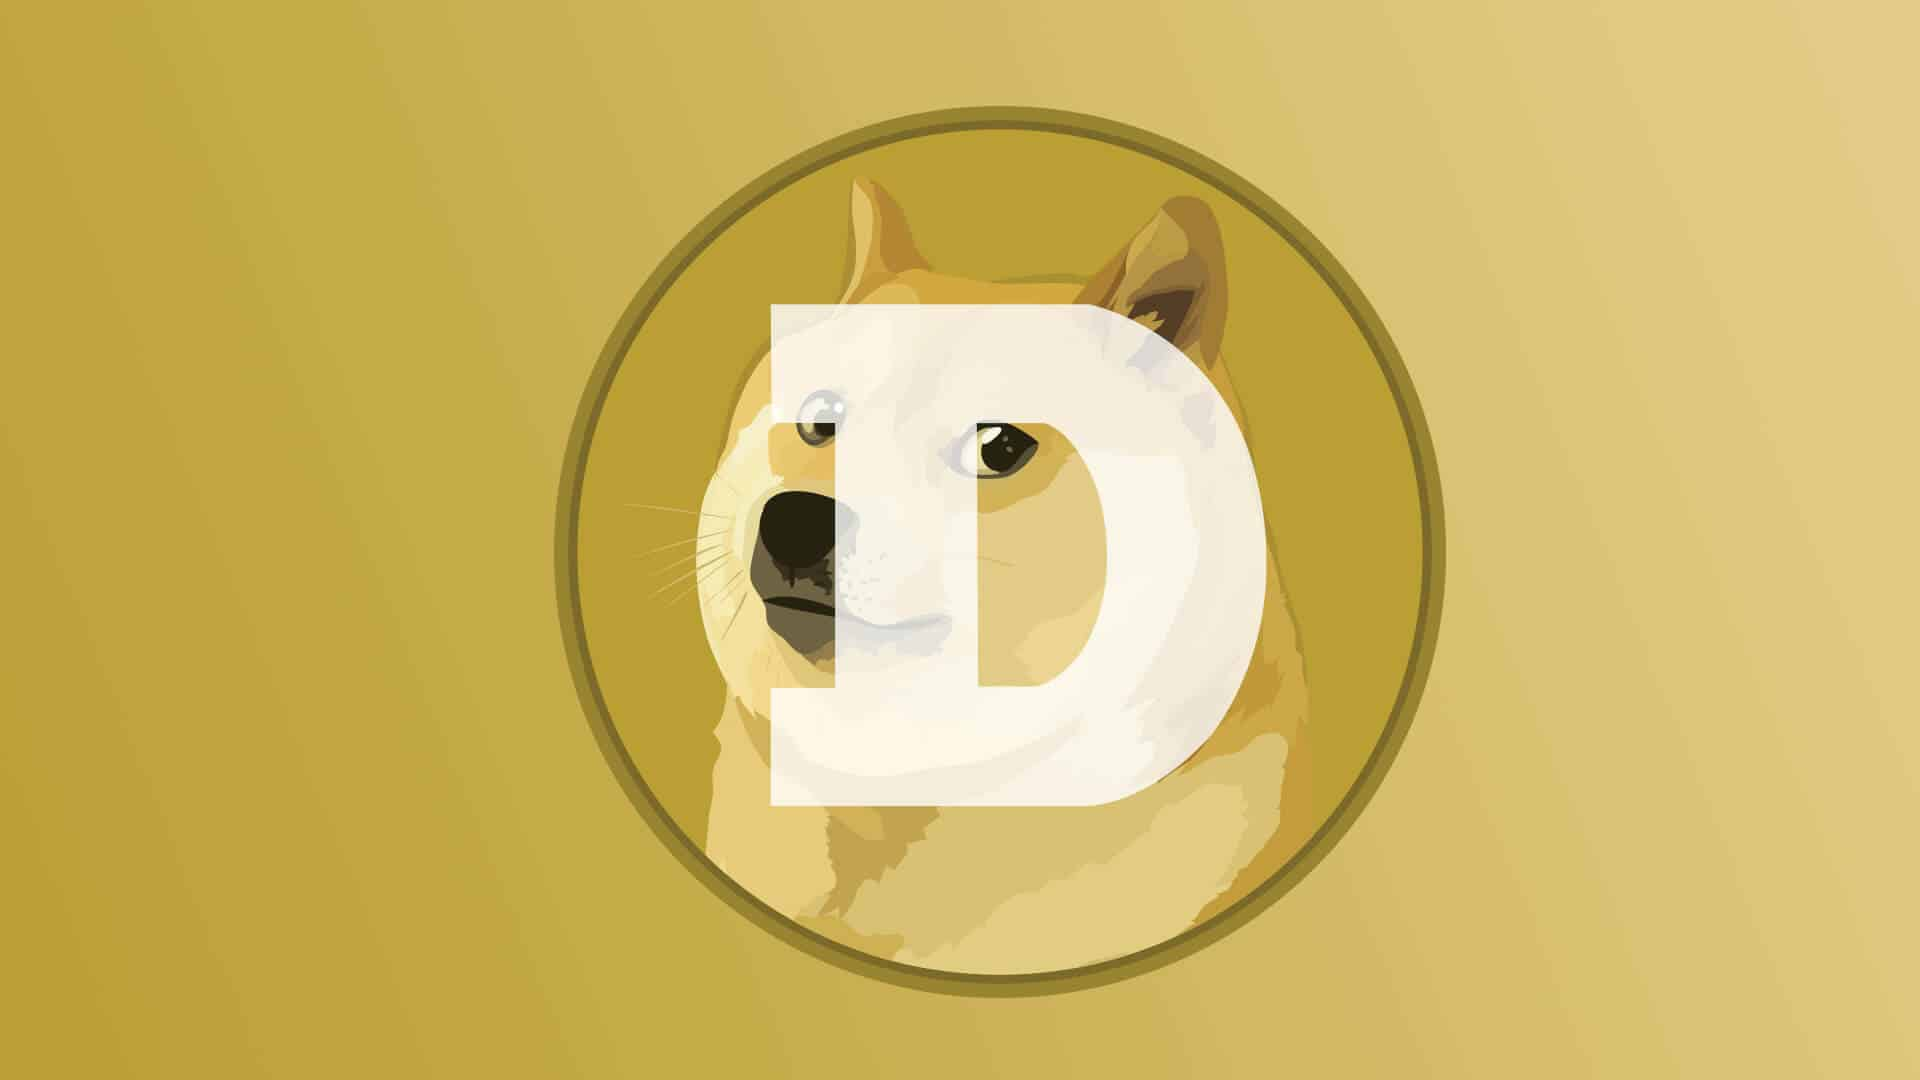 Dogecoin Kryptowährung, to the moon